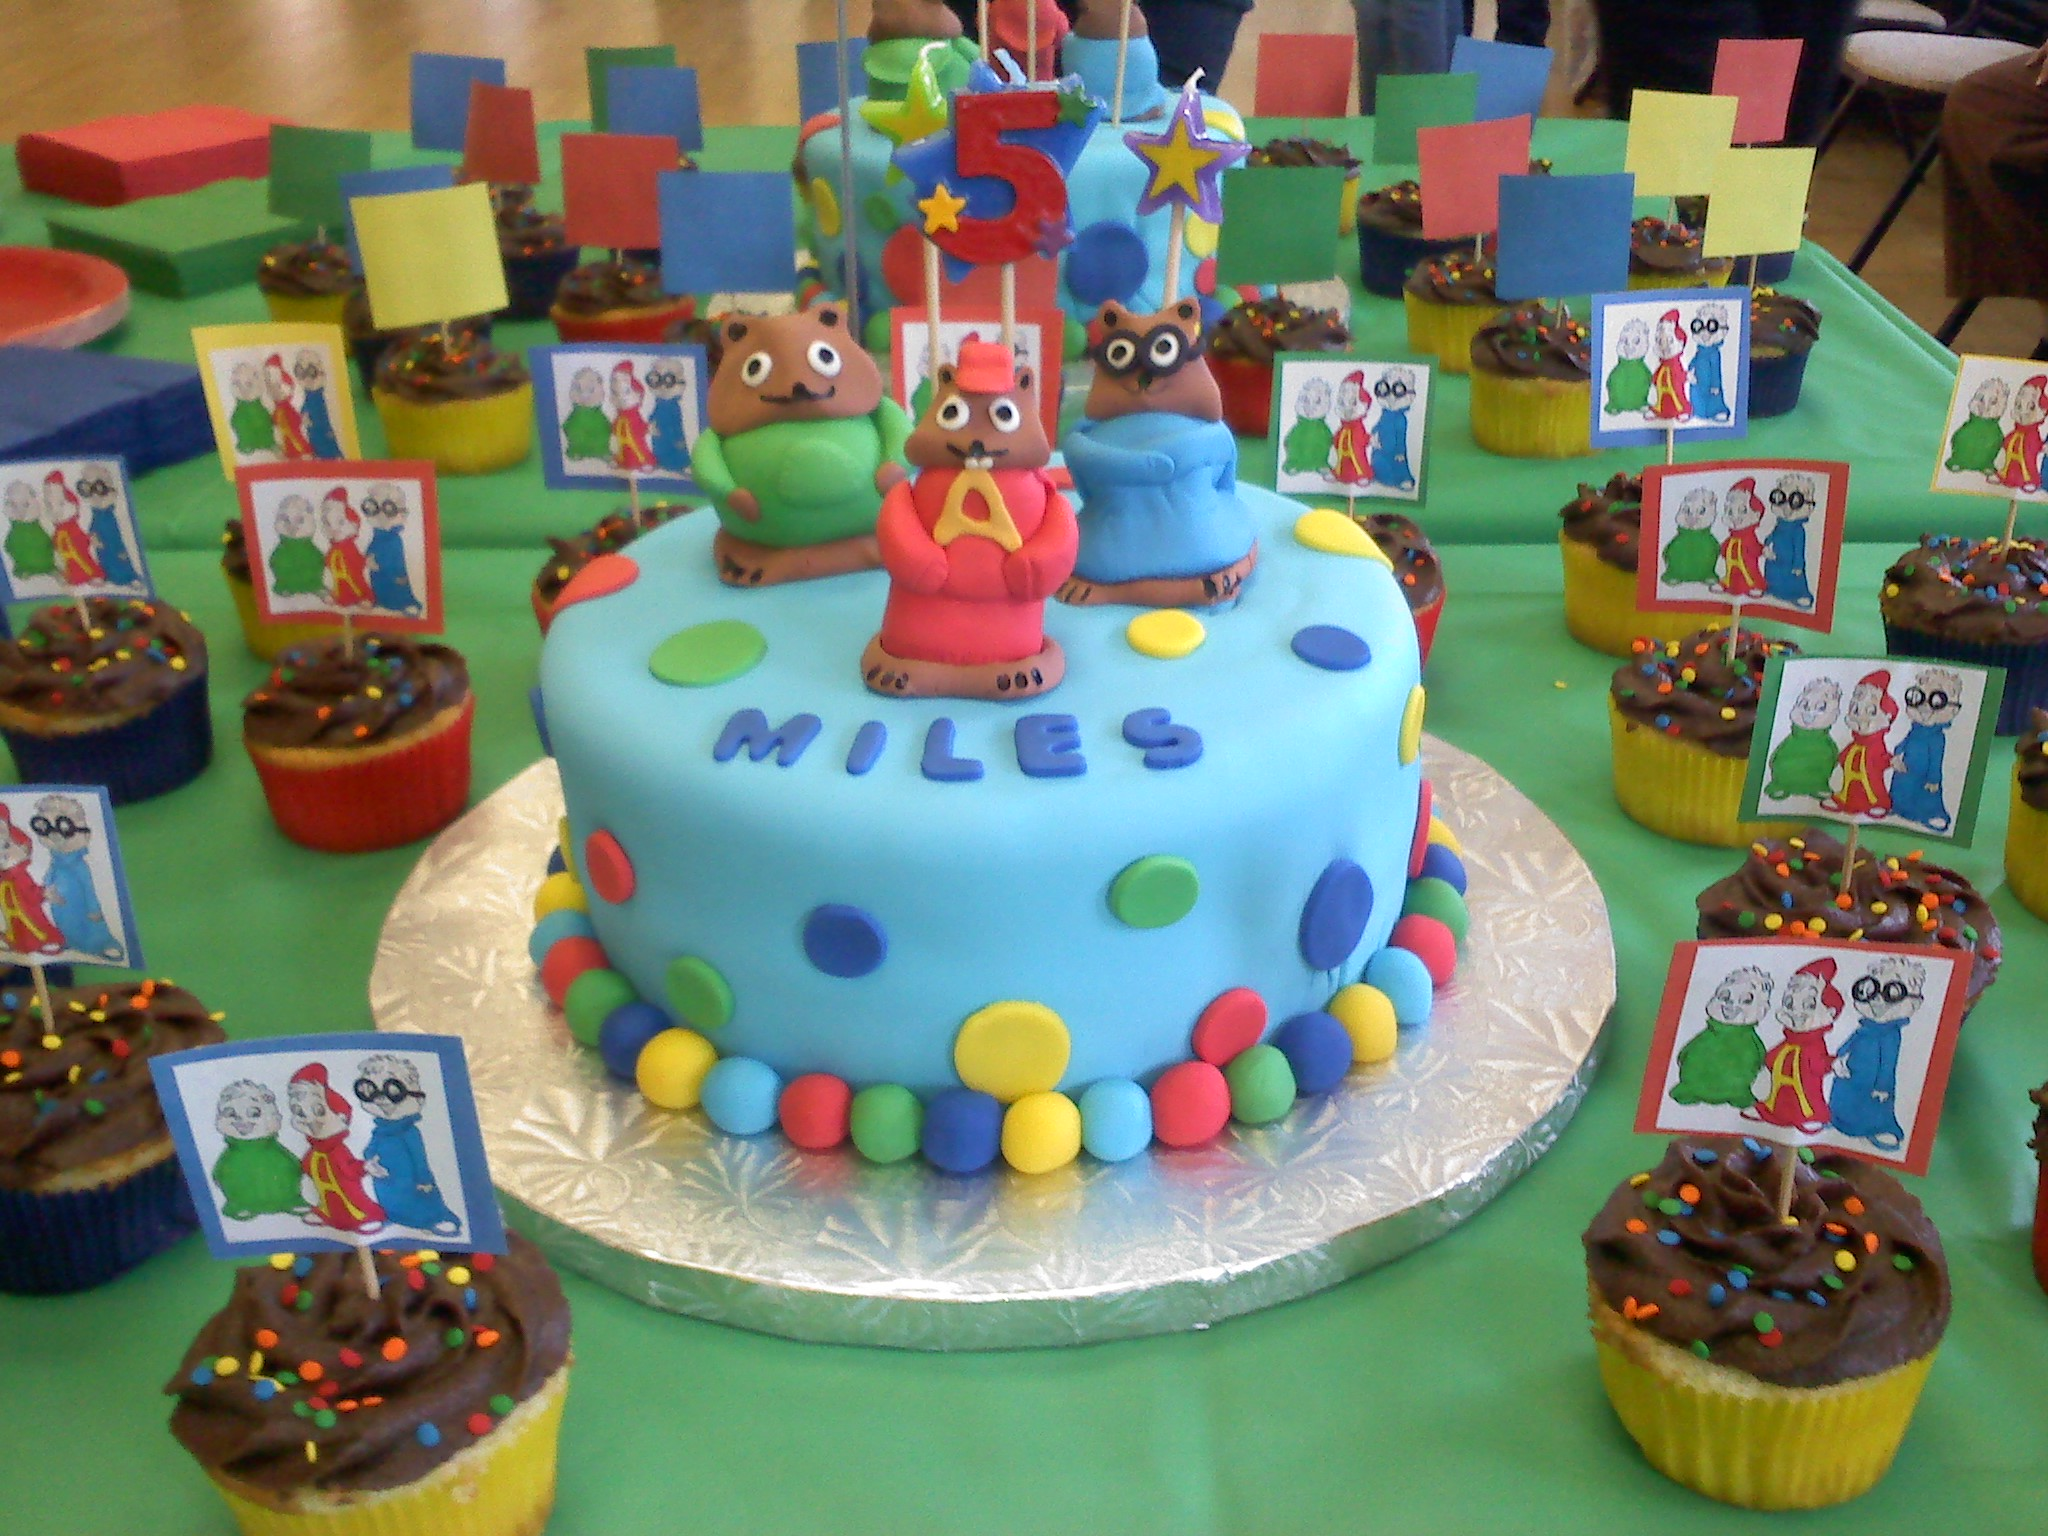 Alvin And The Chipmunks Birthday Cake: Gallery